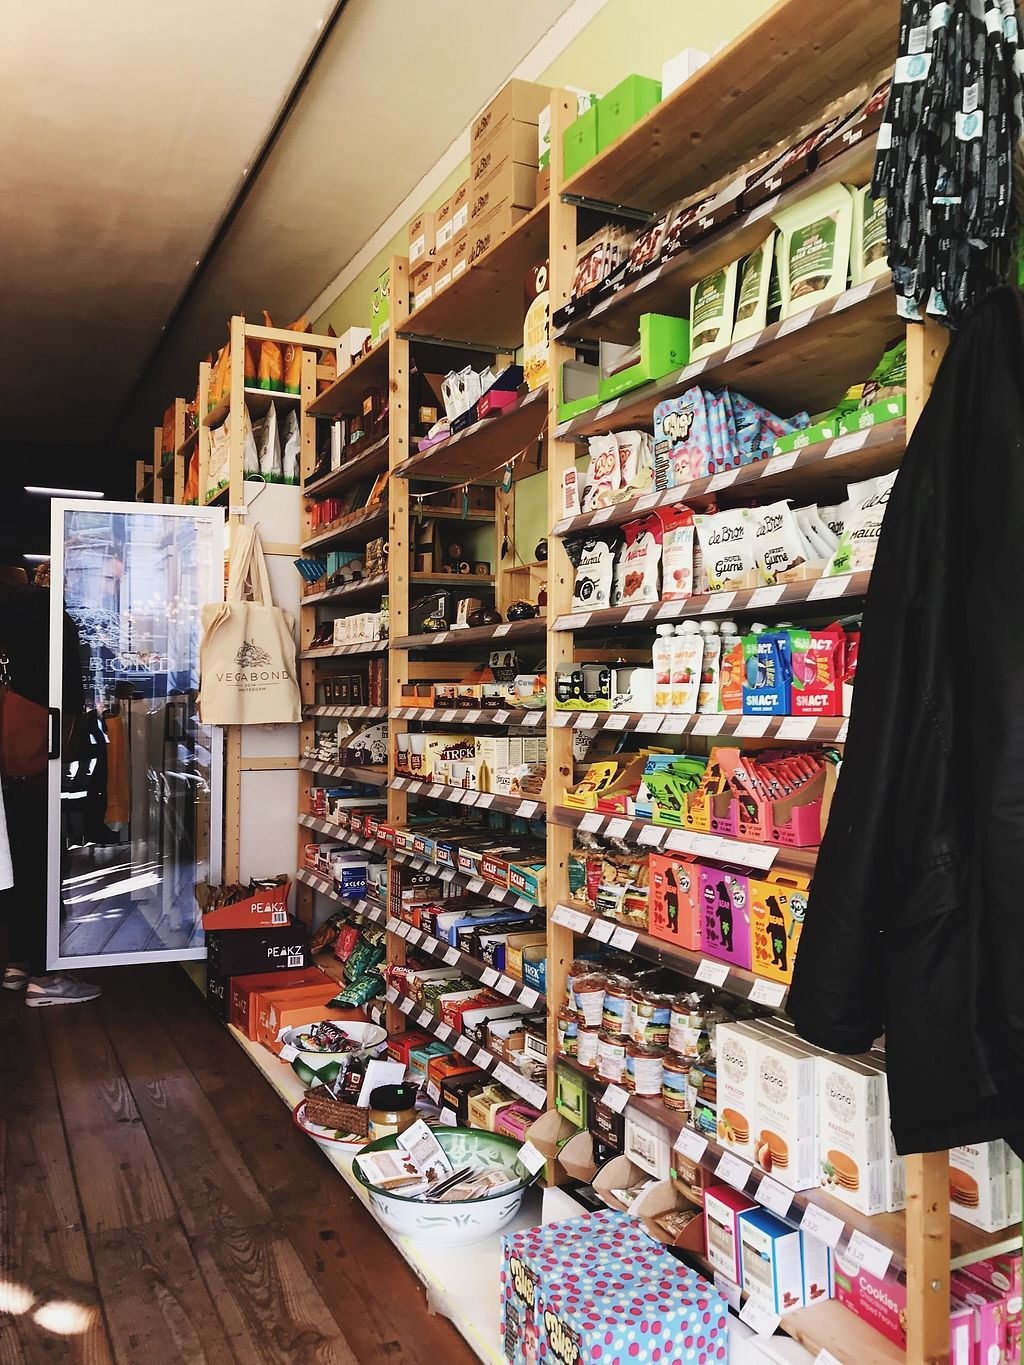 """Photo of Vegabond Store & Cafe  by <a href=""""/members/profile/Gourmetvegan"""">Gourmetvegan</a> <br/>Store <br/> February 25, 2018  - <a href='/contact/abuse/image/49271/363552'>Report</a>"""